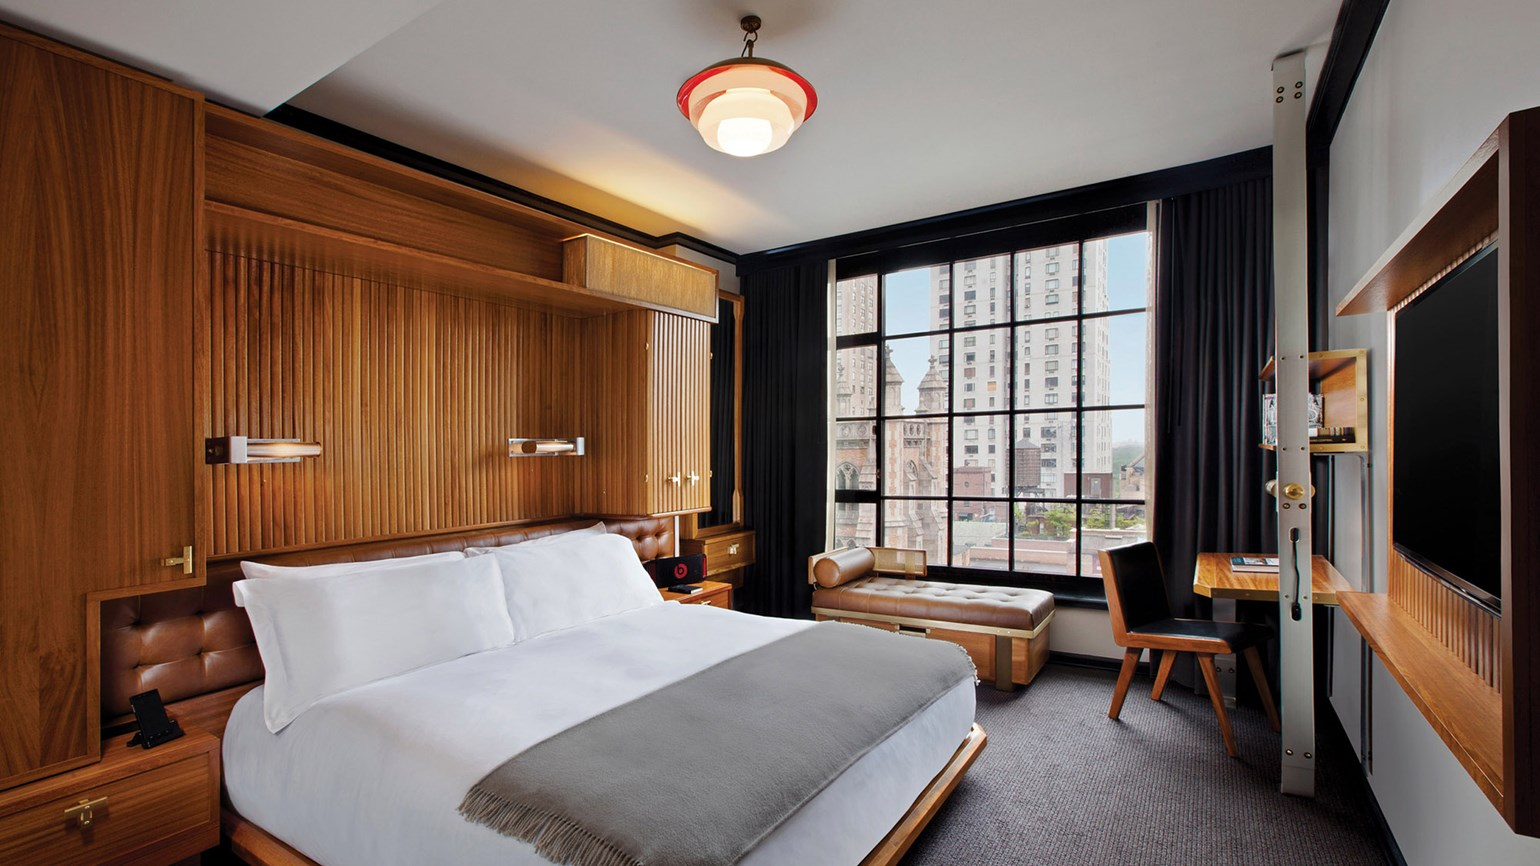 Viceroy Central Park creates 'Wellness Weekend' packages